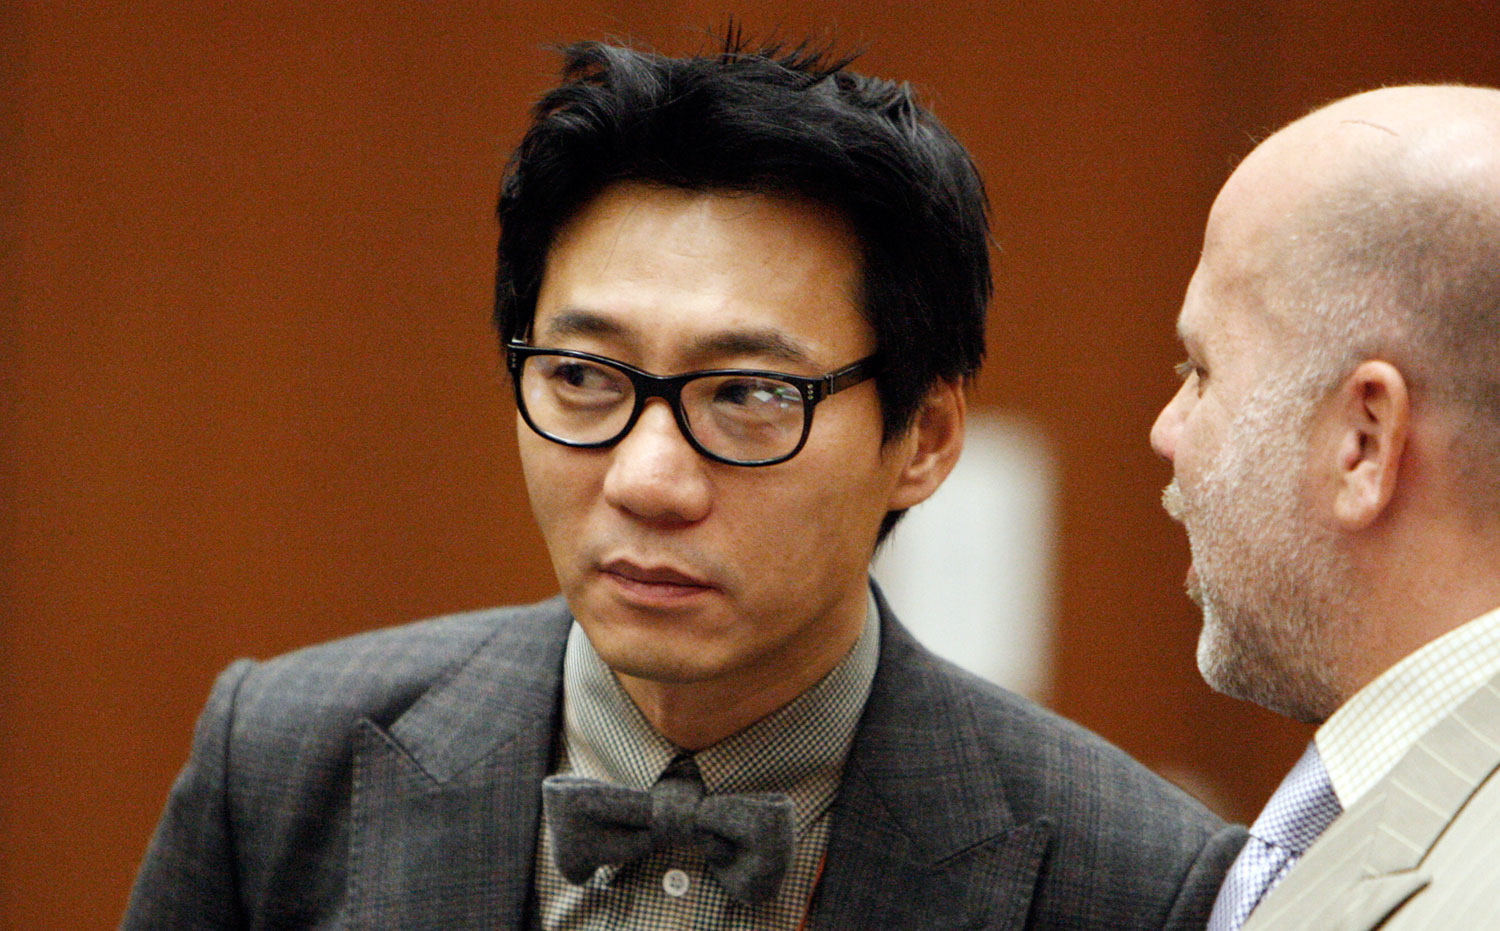 Young Lee stands with his attorney Philip Kent Cohen, right, during his arraignment in the Los Angeles Criminal Courts Building in Los Angeles in 2012.